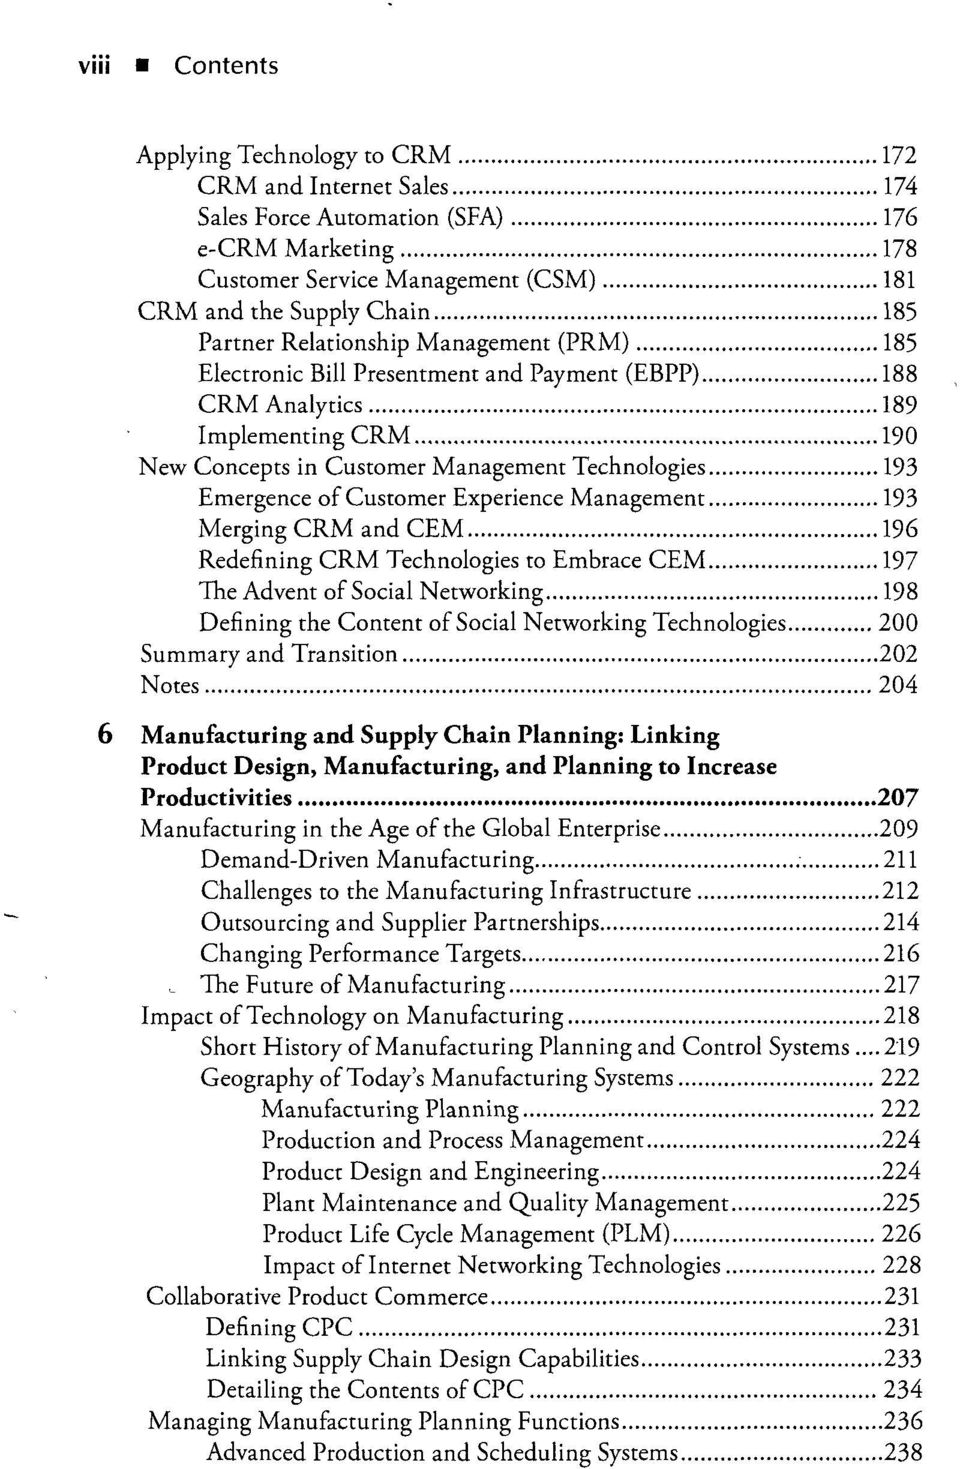 Experience Management 193 Merging CRM and CEM 196 Redefining CRM Technologies to Embrace CEM 197 The Advent of Social Networking 198 Defining the Content of Social Networking Technologies 200 Summary